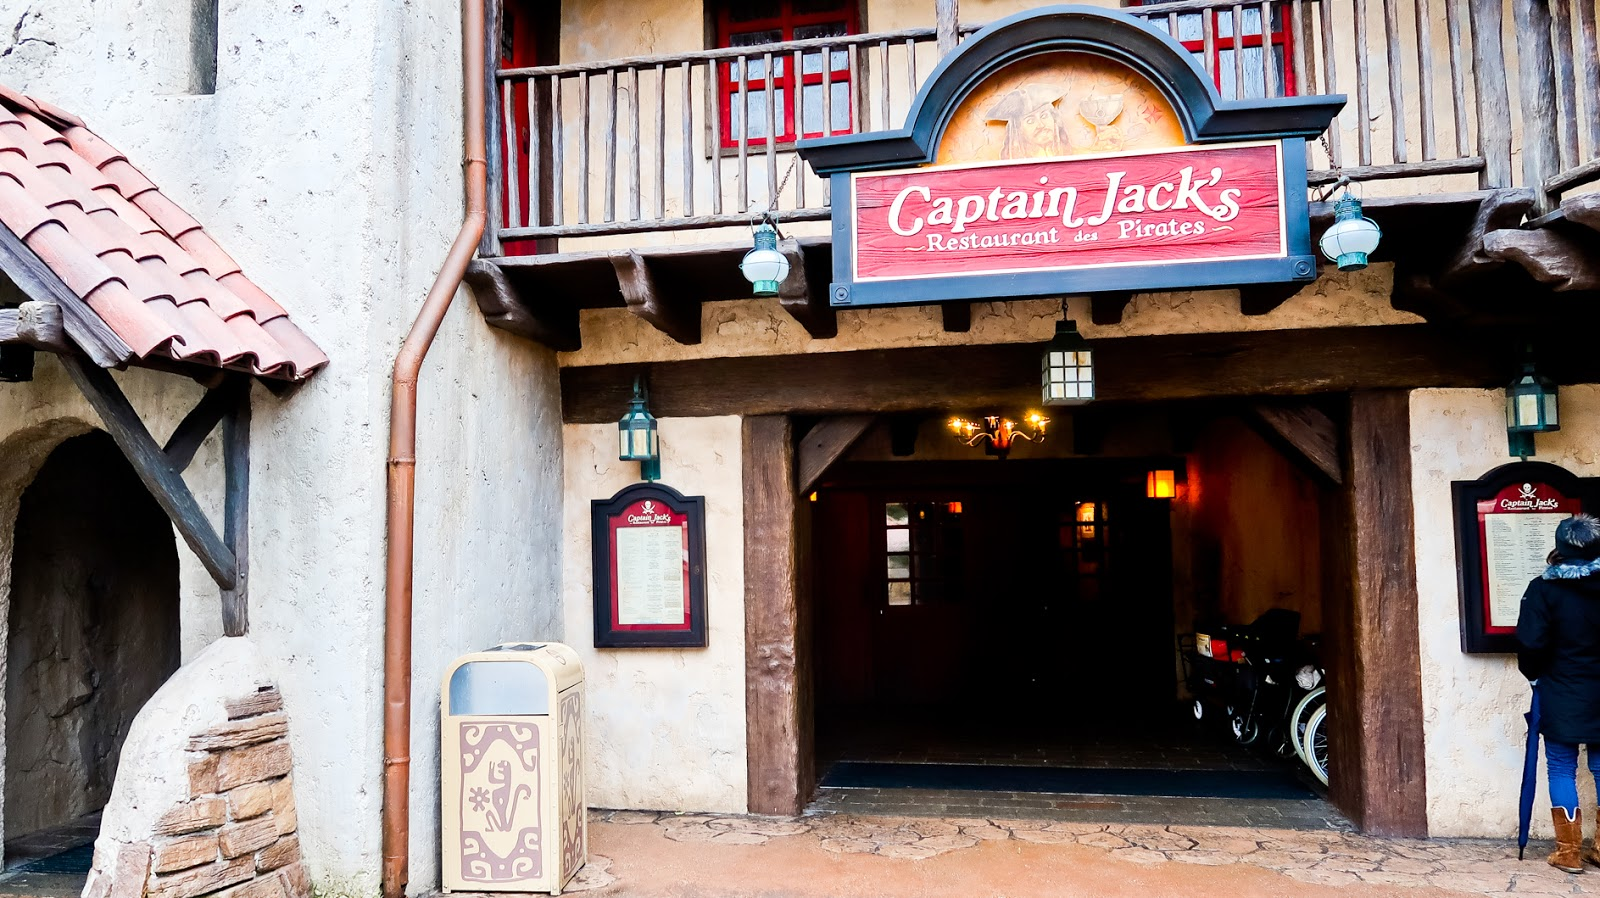 captain jacks disneyland paris, where to eat as a vegetarian disneyland paris, vegetarian in disneyland paris,